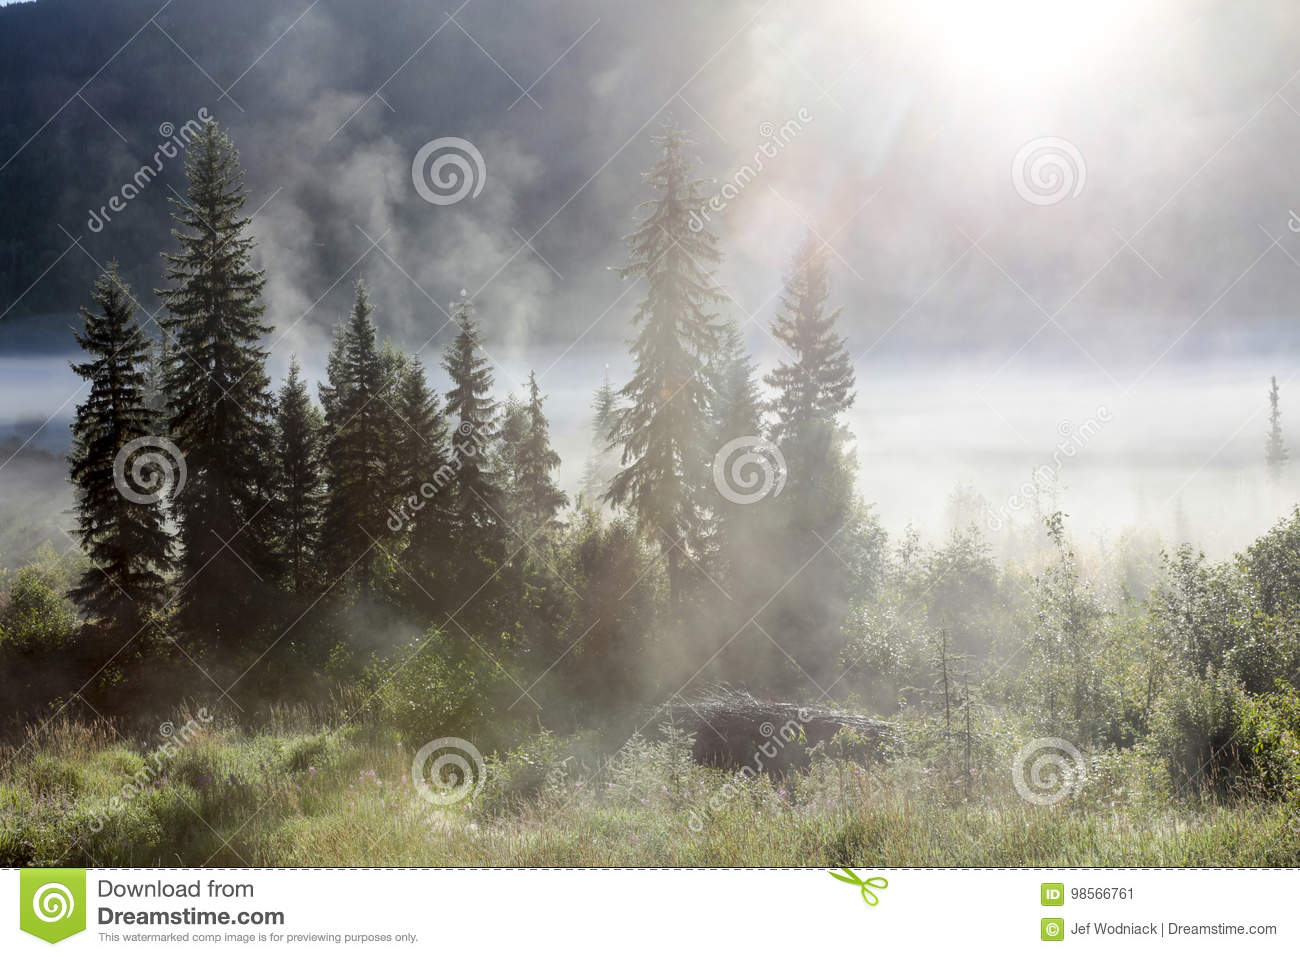 Morning mist stock image  Image of gray, natural, mist